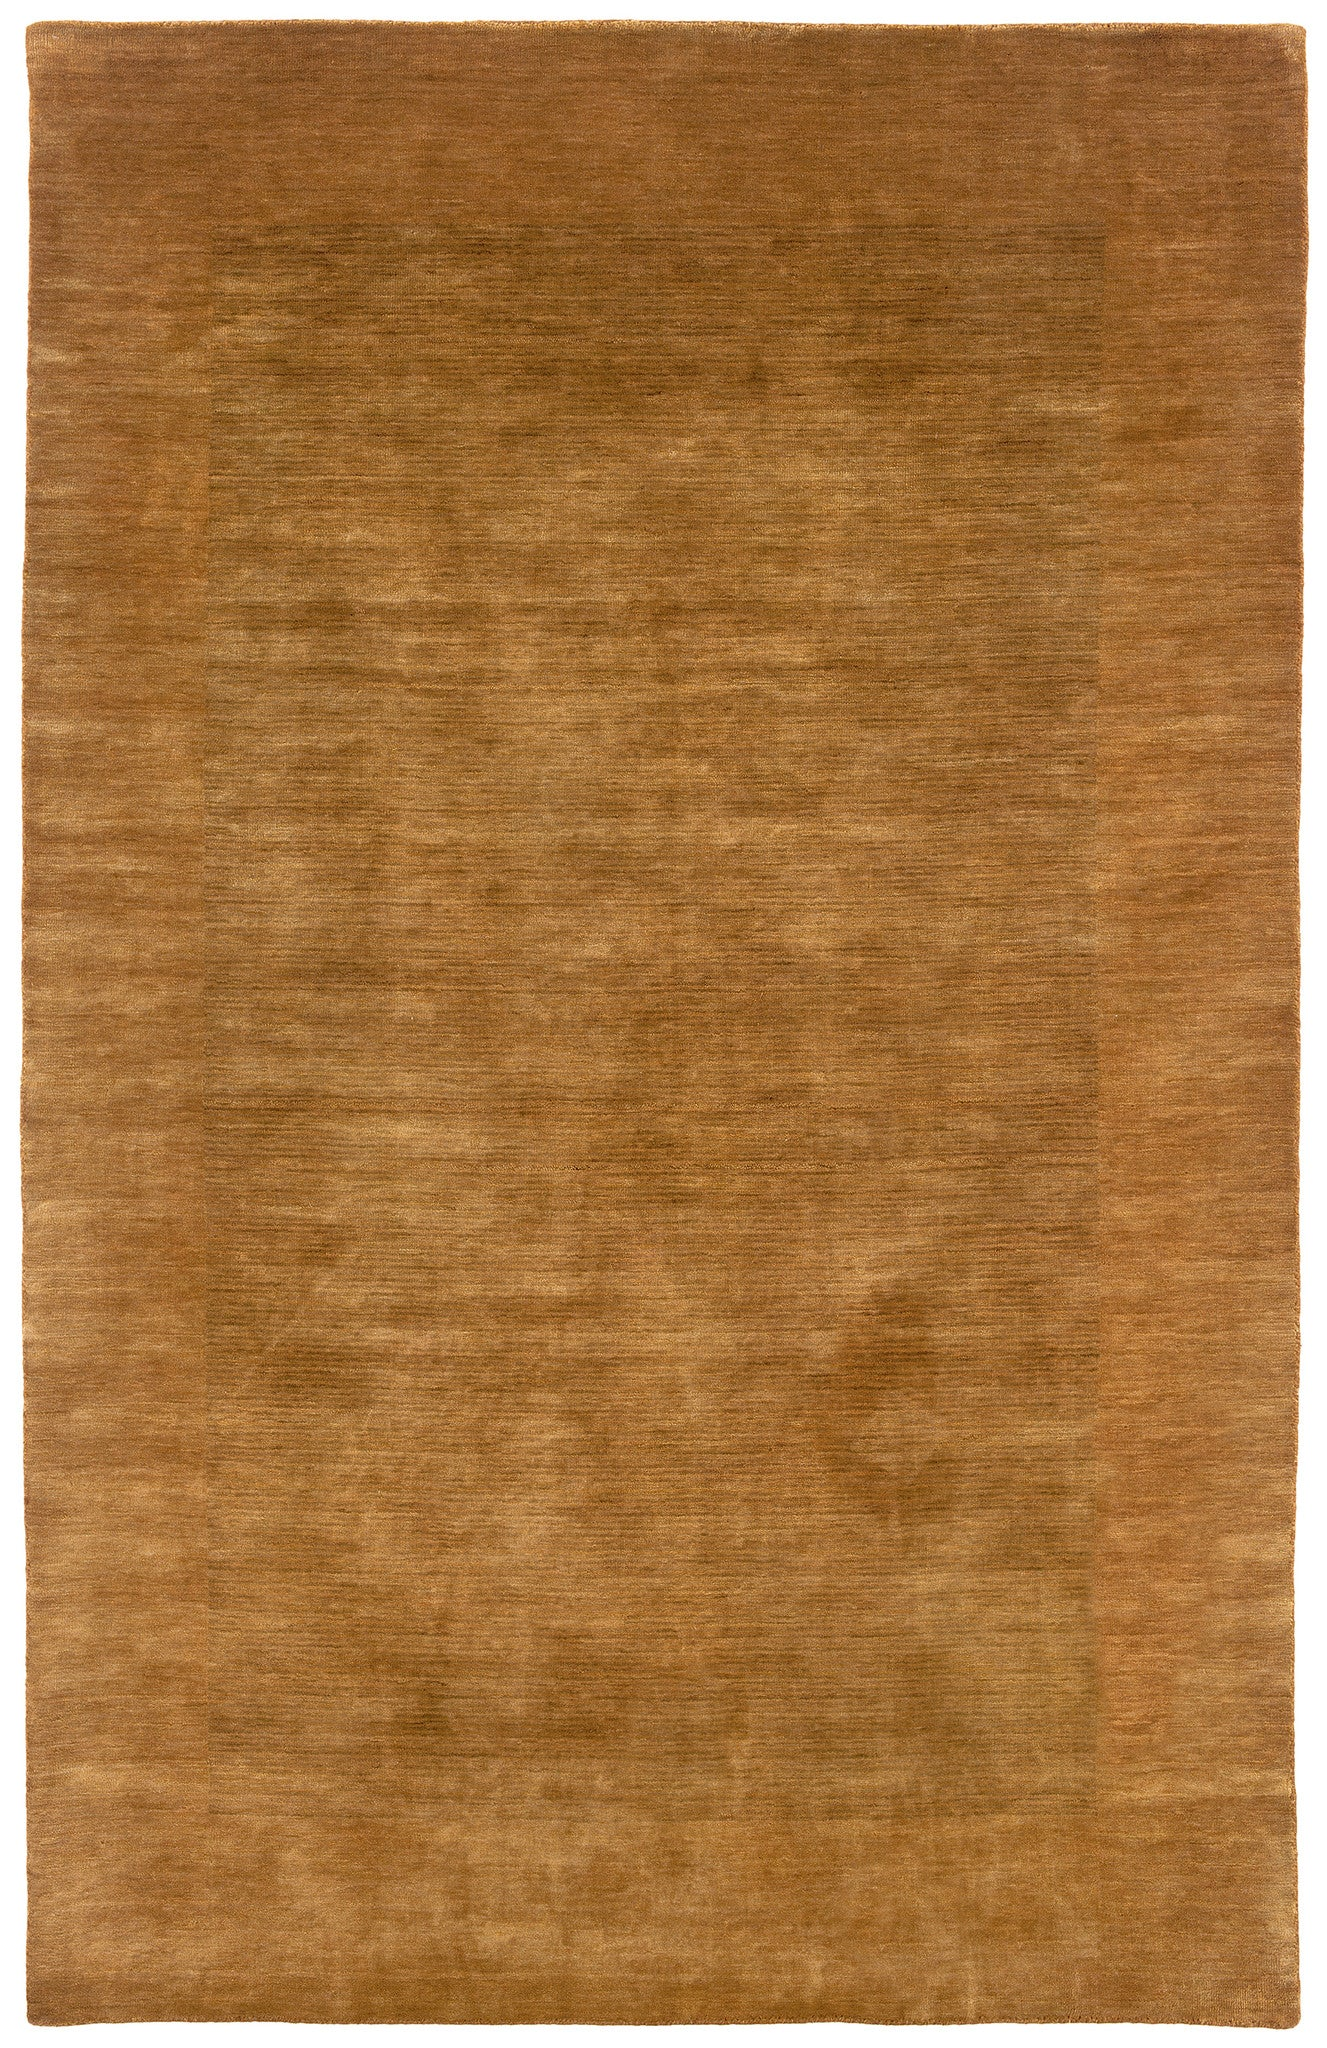 LR Resources Loom Seridian 03811 Ochre Area Rug